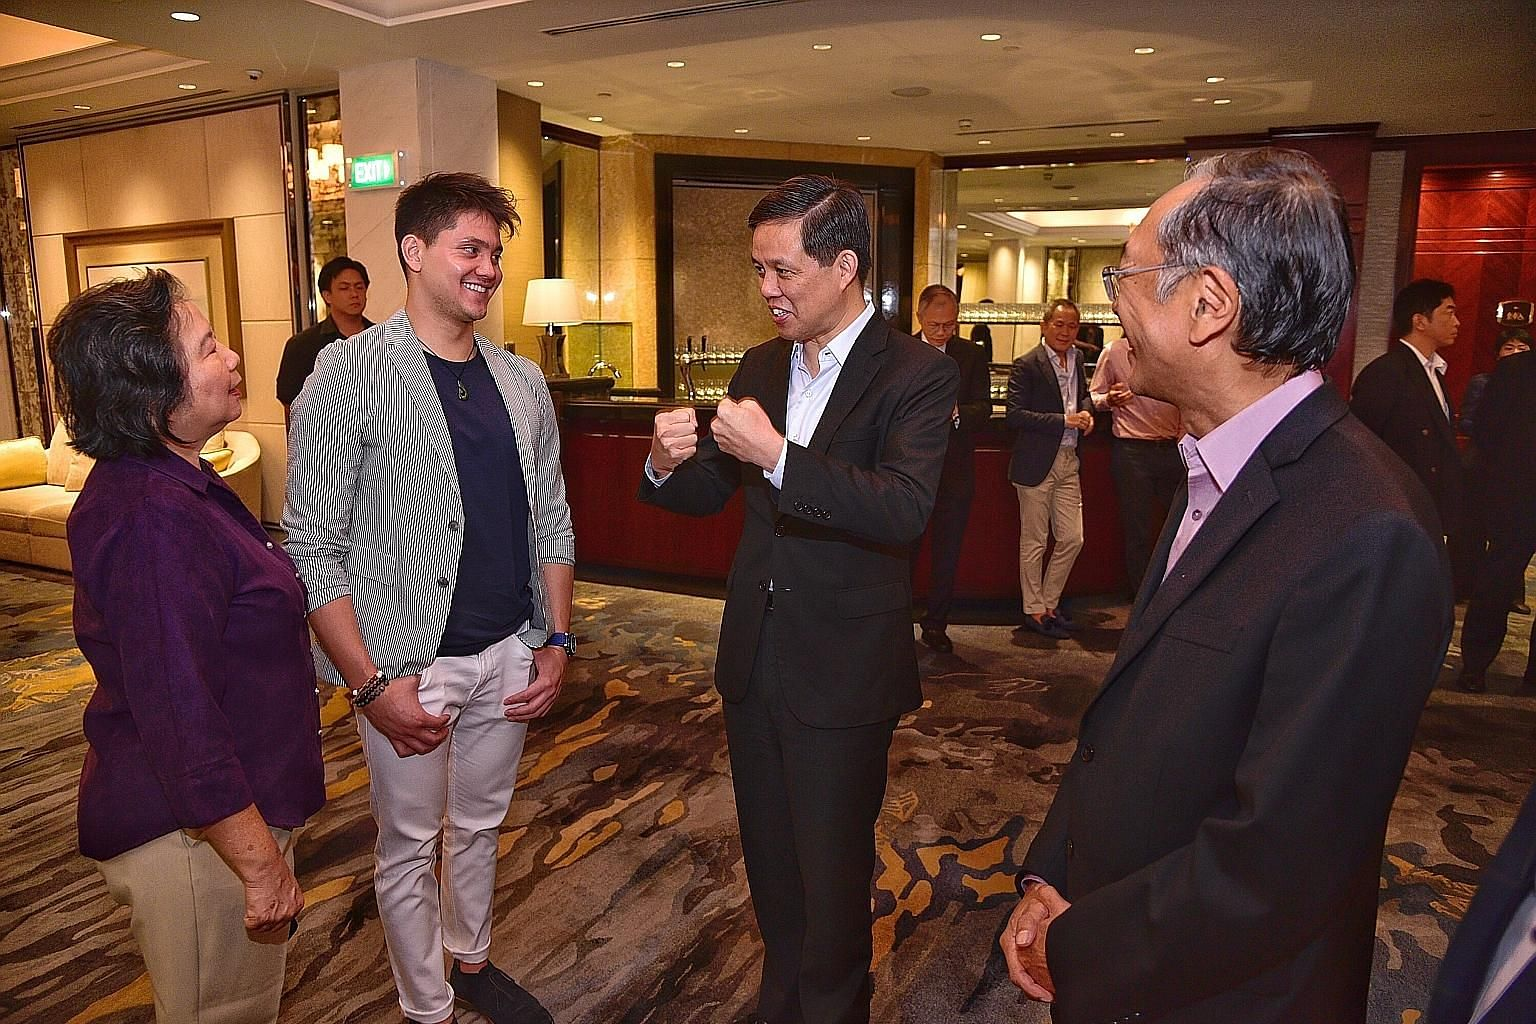 Minister for Trade and Industry Chan Chun Sing, the guest of honour at the Singapore Swimming Association's fund-raising dinner, speaking to Olympic gold medallist Joseph Schooling, his mother May and SSA president Lee Kok Choy. ST DESMOND WEE